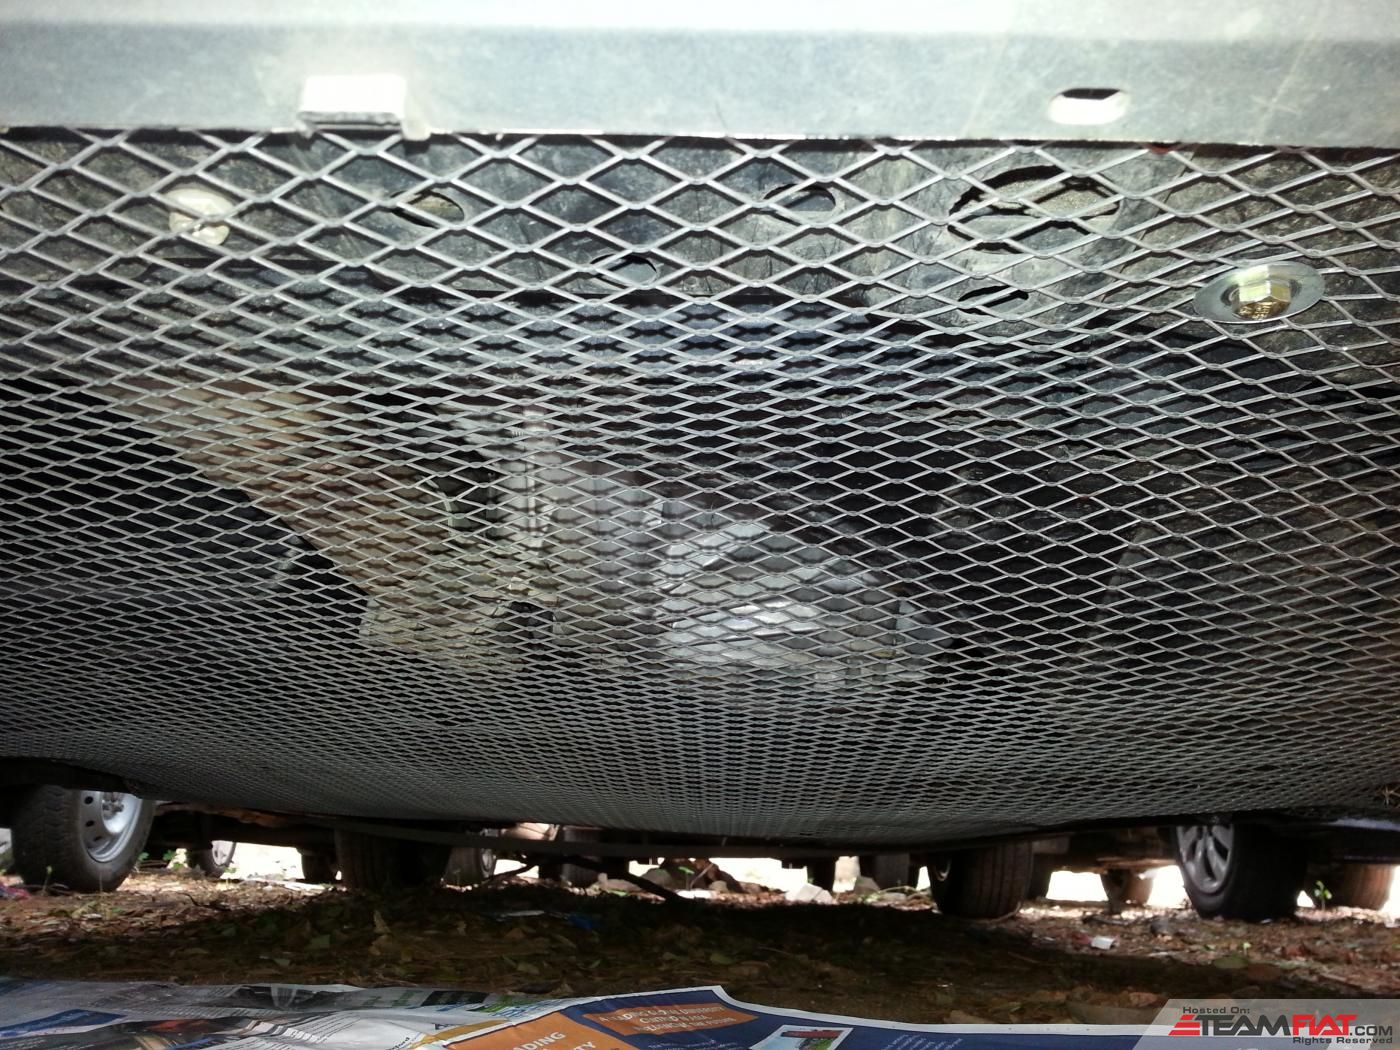 Car Mesh Swift Car photo2.jpg